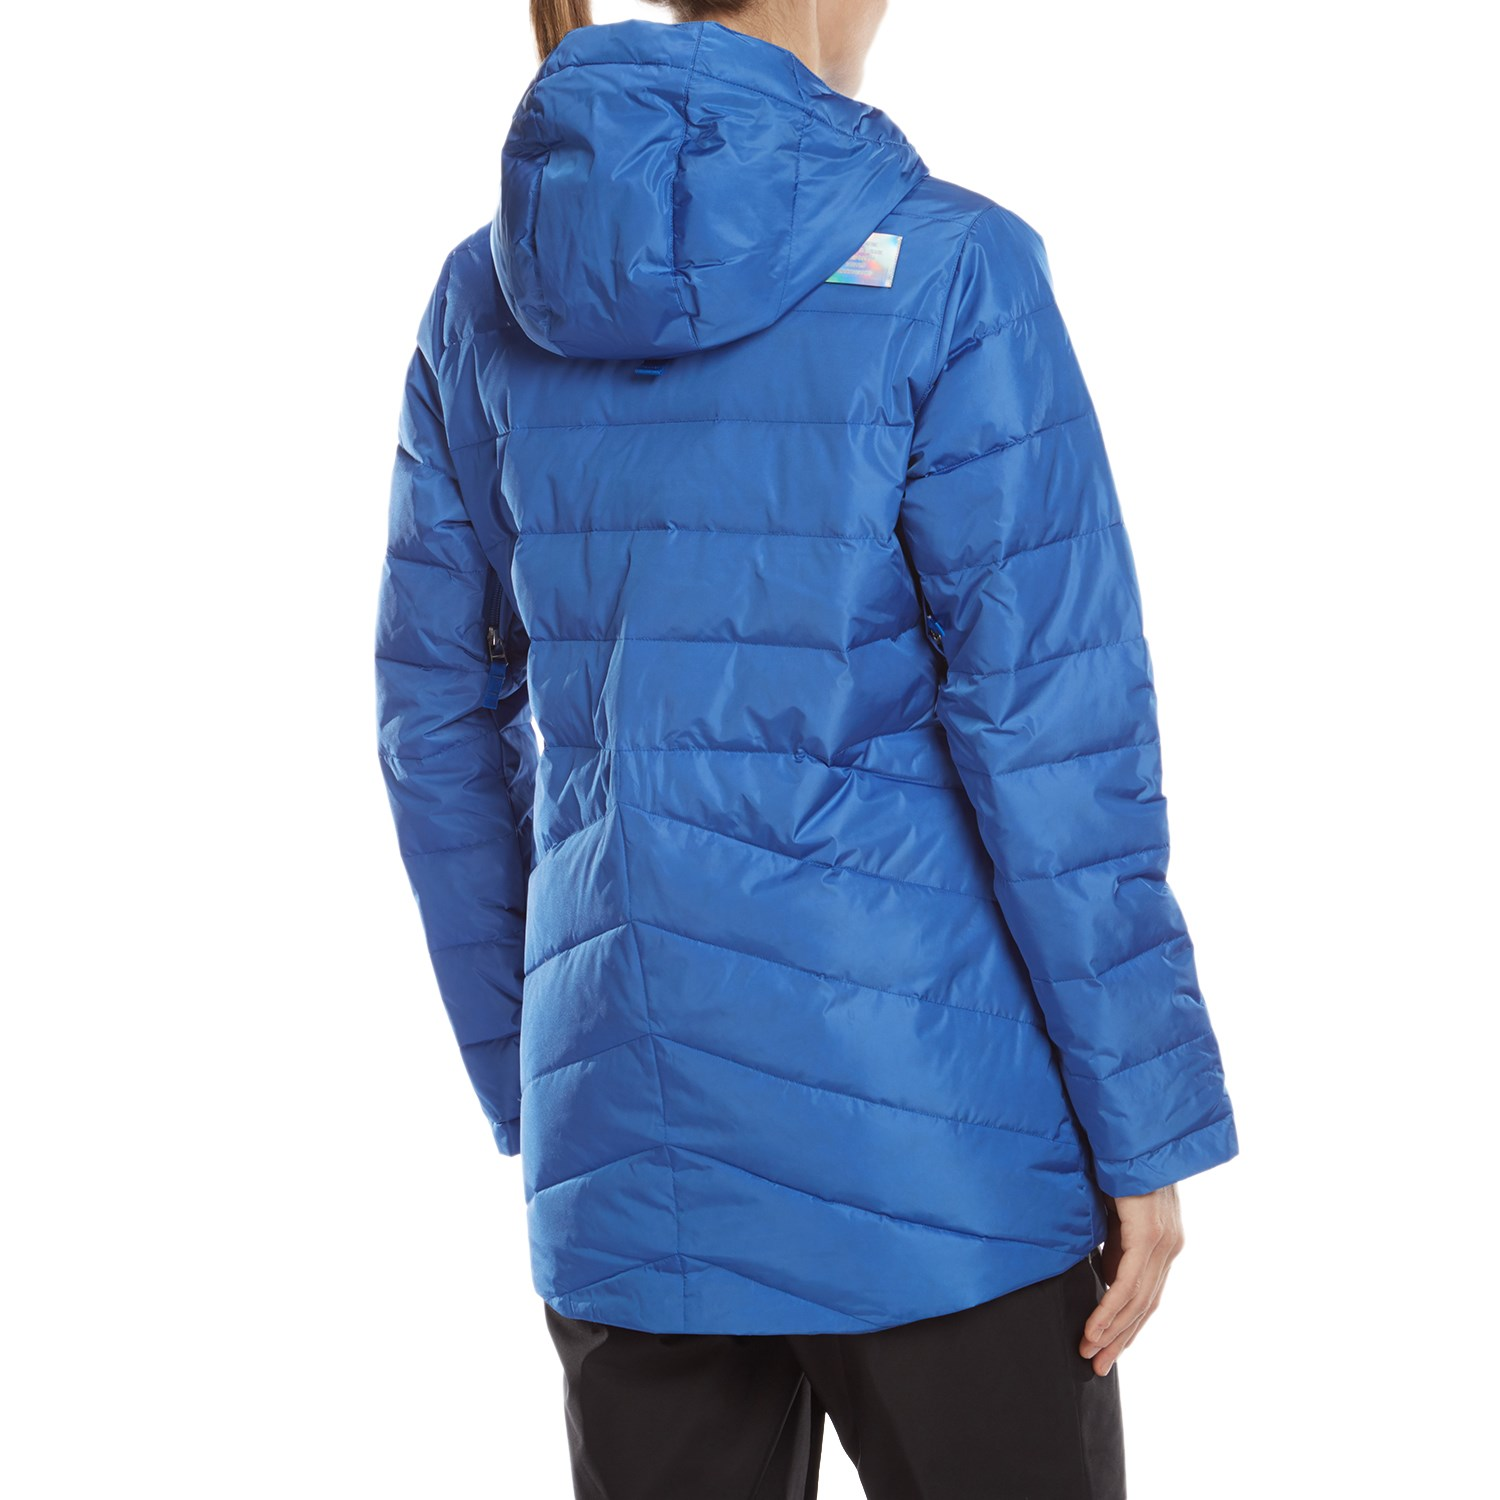 Sphinx Down Jacket scuba Burton